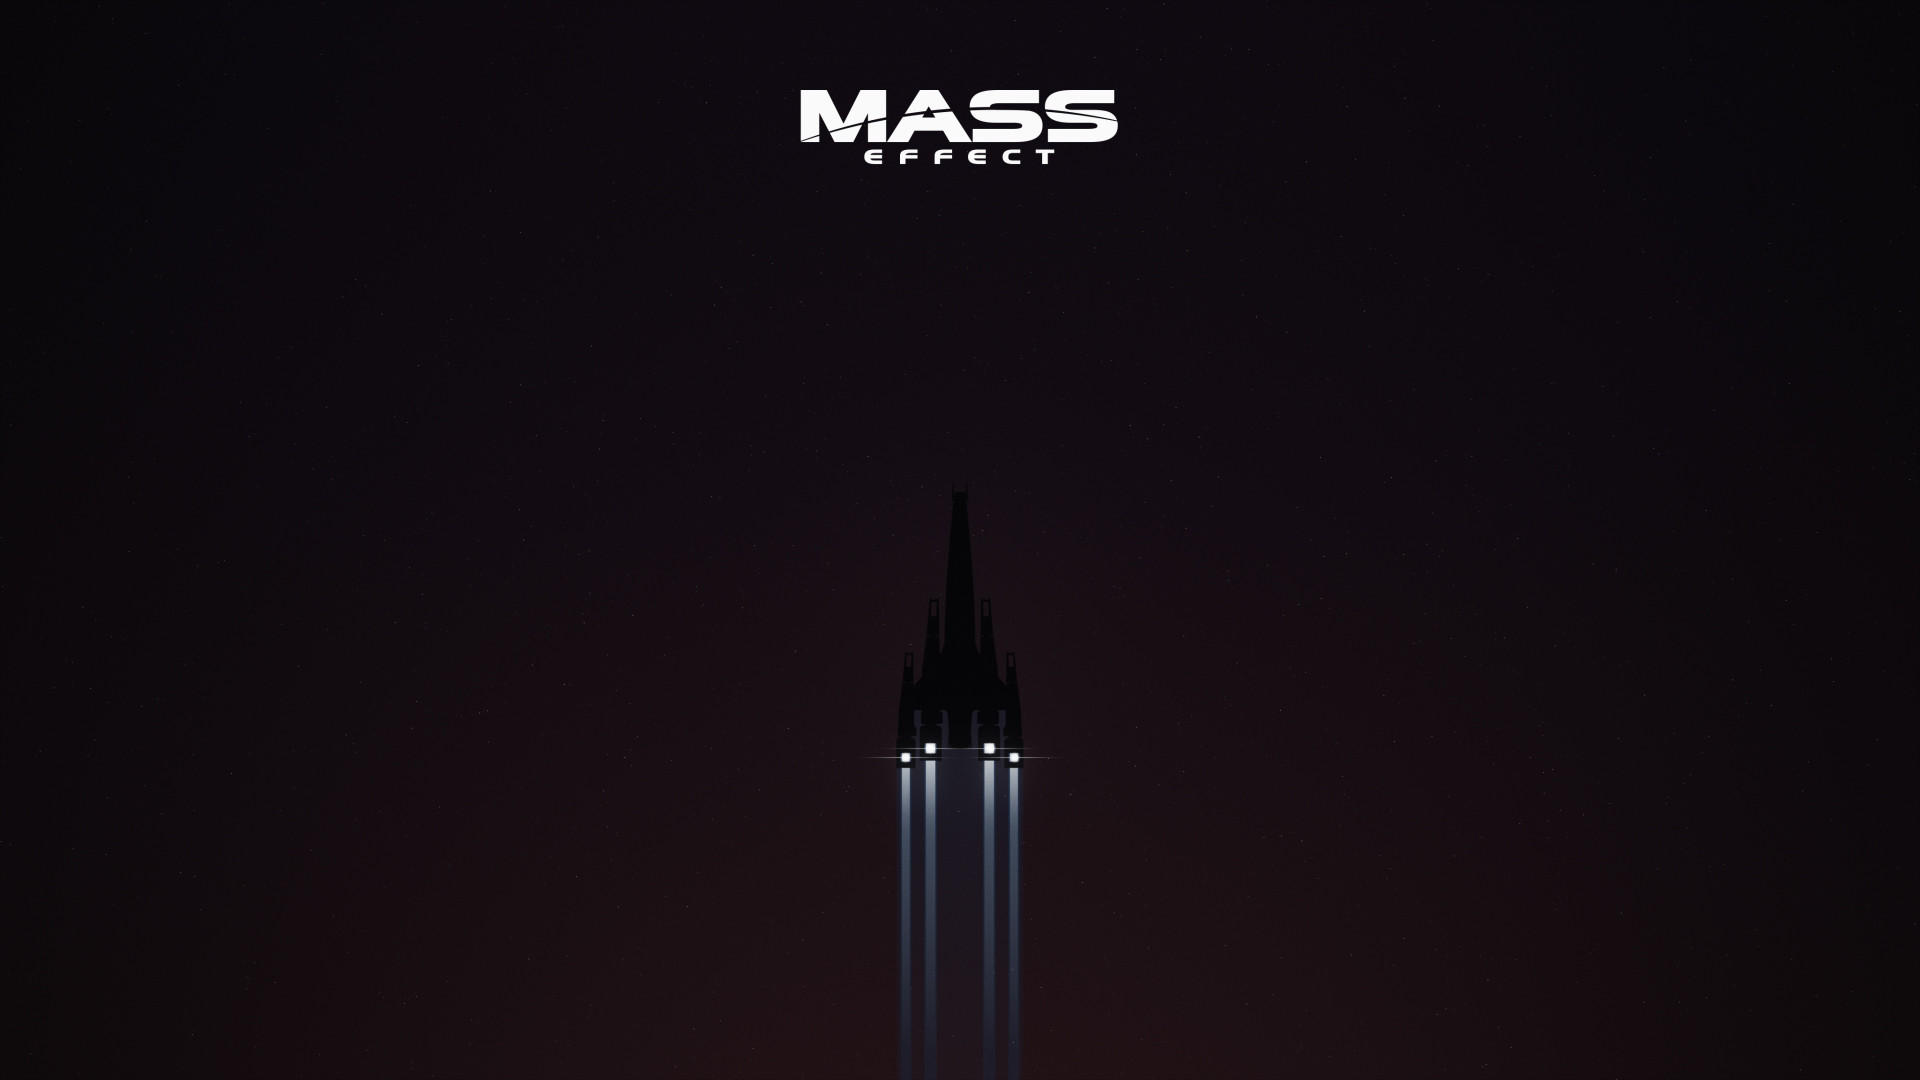 Mass Effect Minimalism, HD Games, 4k Wallpapers, Images ...